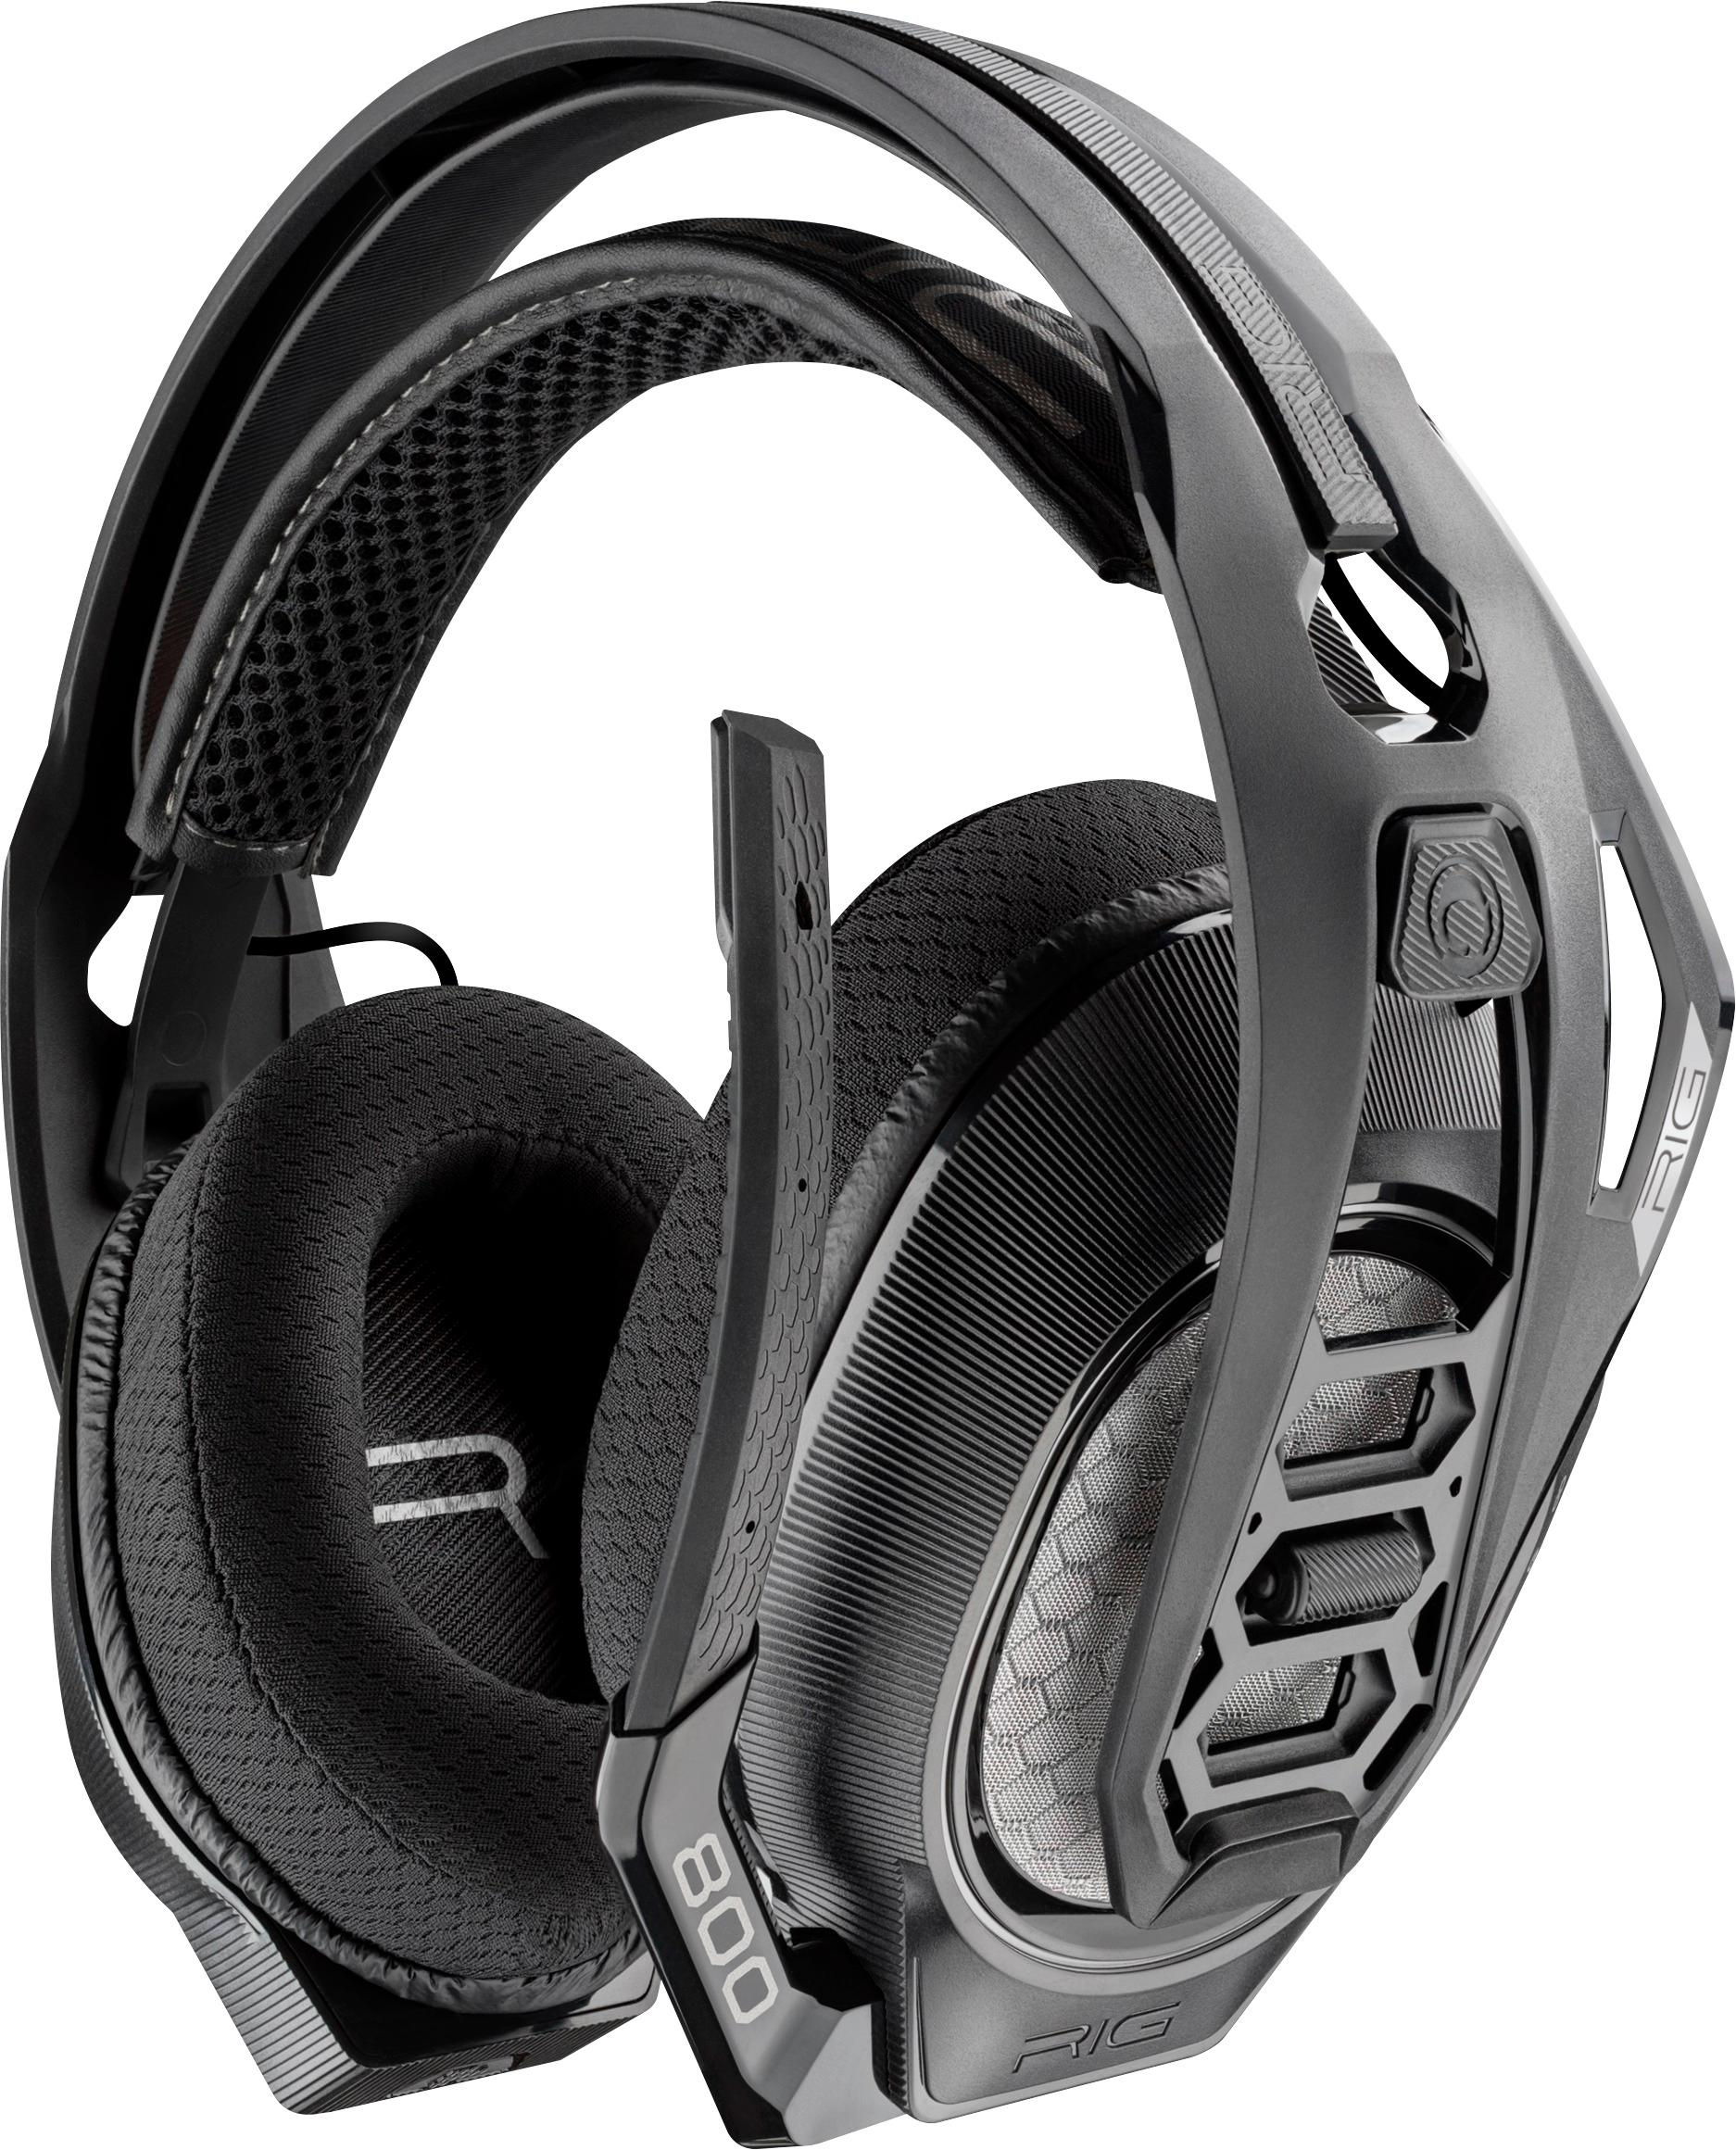 1874x2321 Plantronics Rig 800lx Se Wireless Gaming Headset With Dolby Atmos